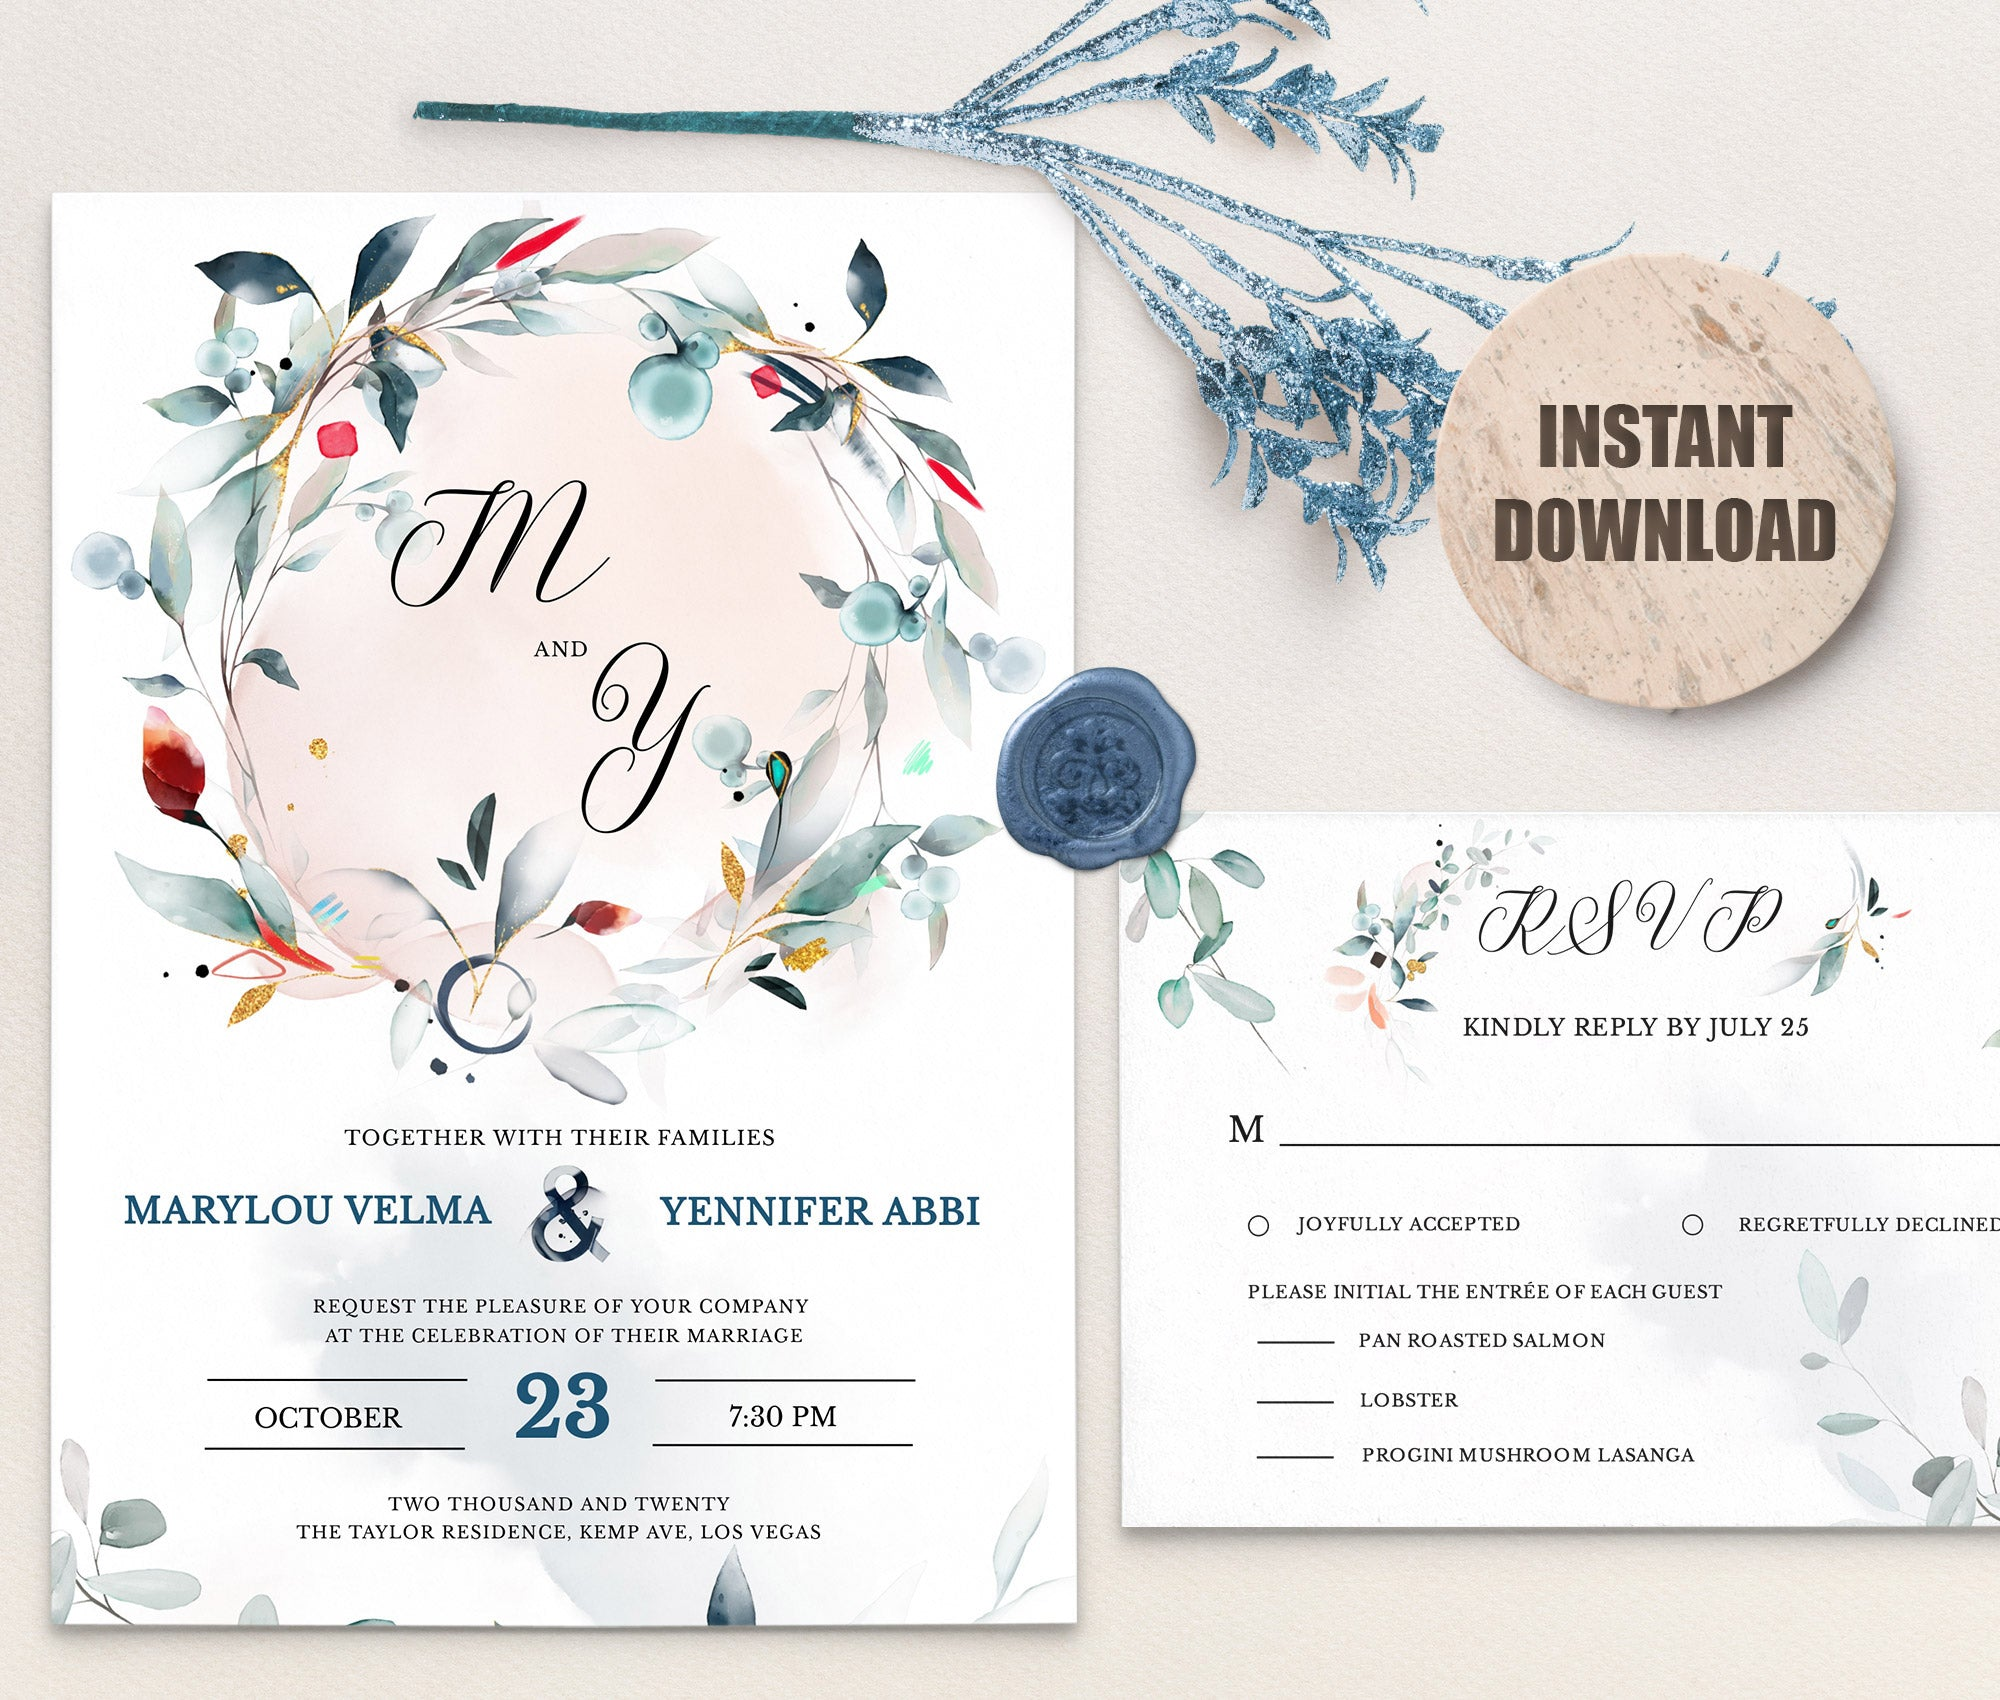 SPMR - Wedding Invitation and RSVP set 1 - Greenlanderdesign